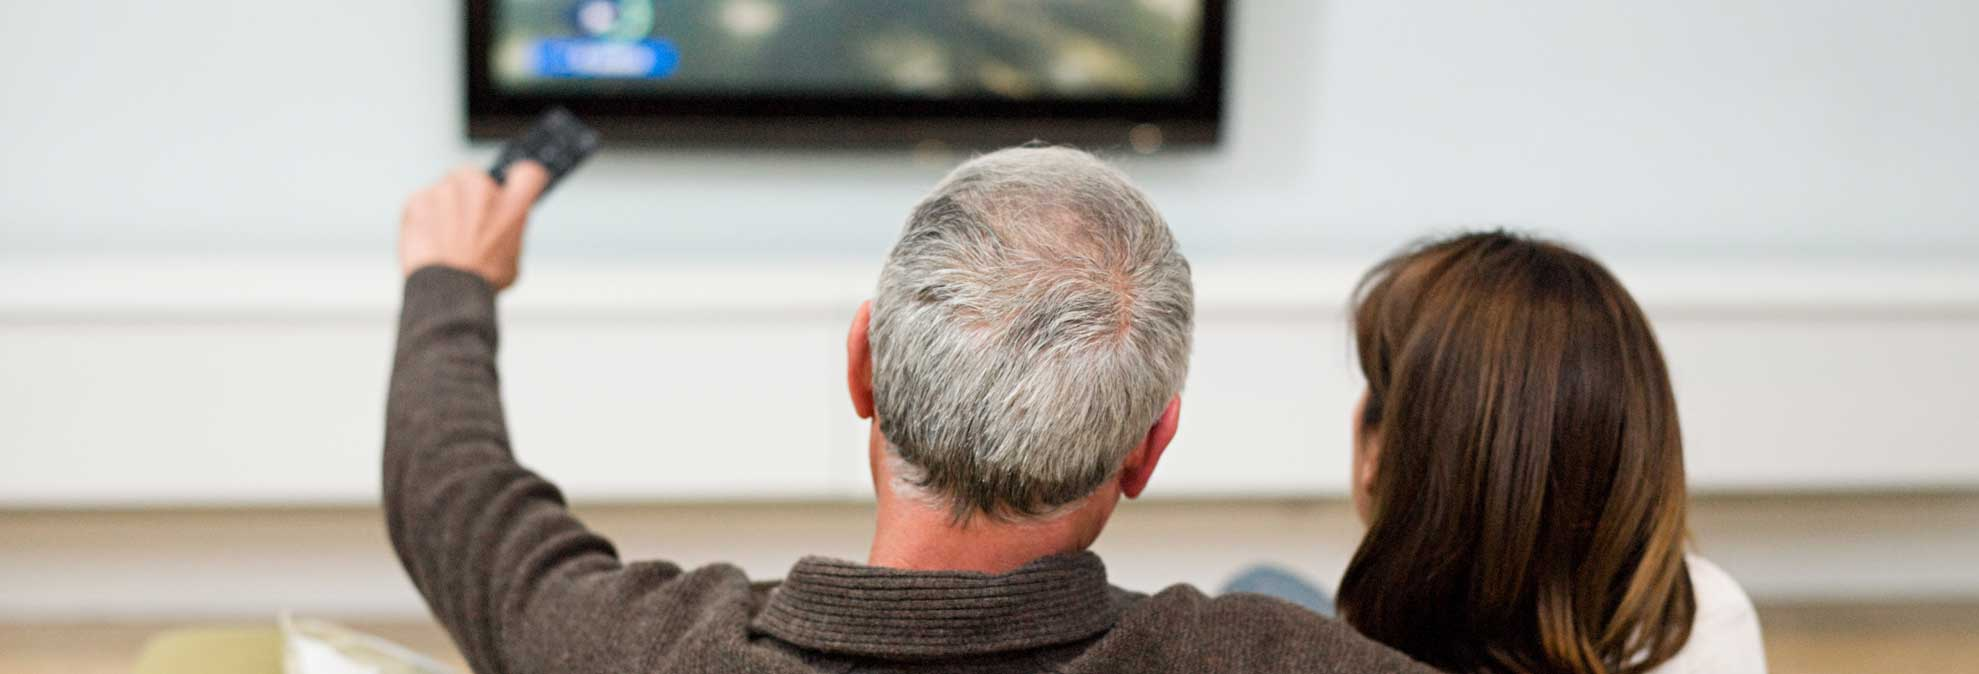 Better Tv Sound For Those With Hearing Loss Consumer Reports How To Build Aid